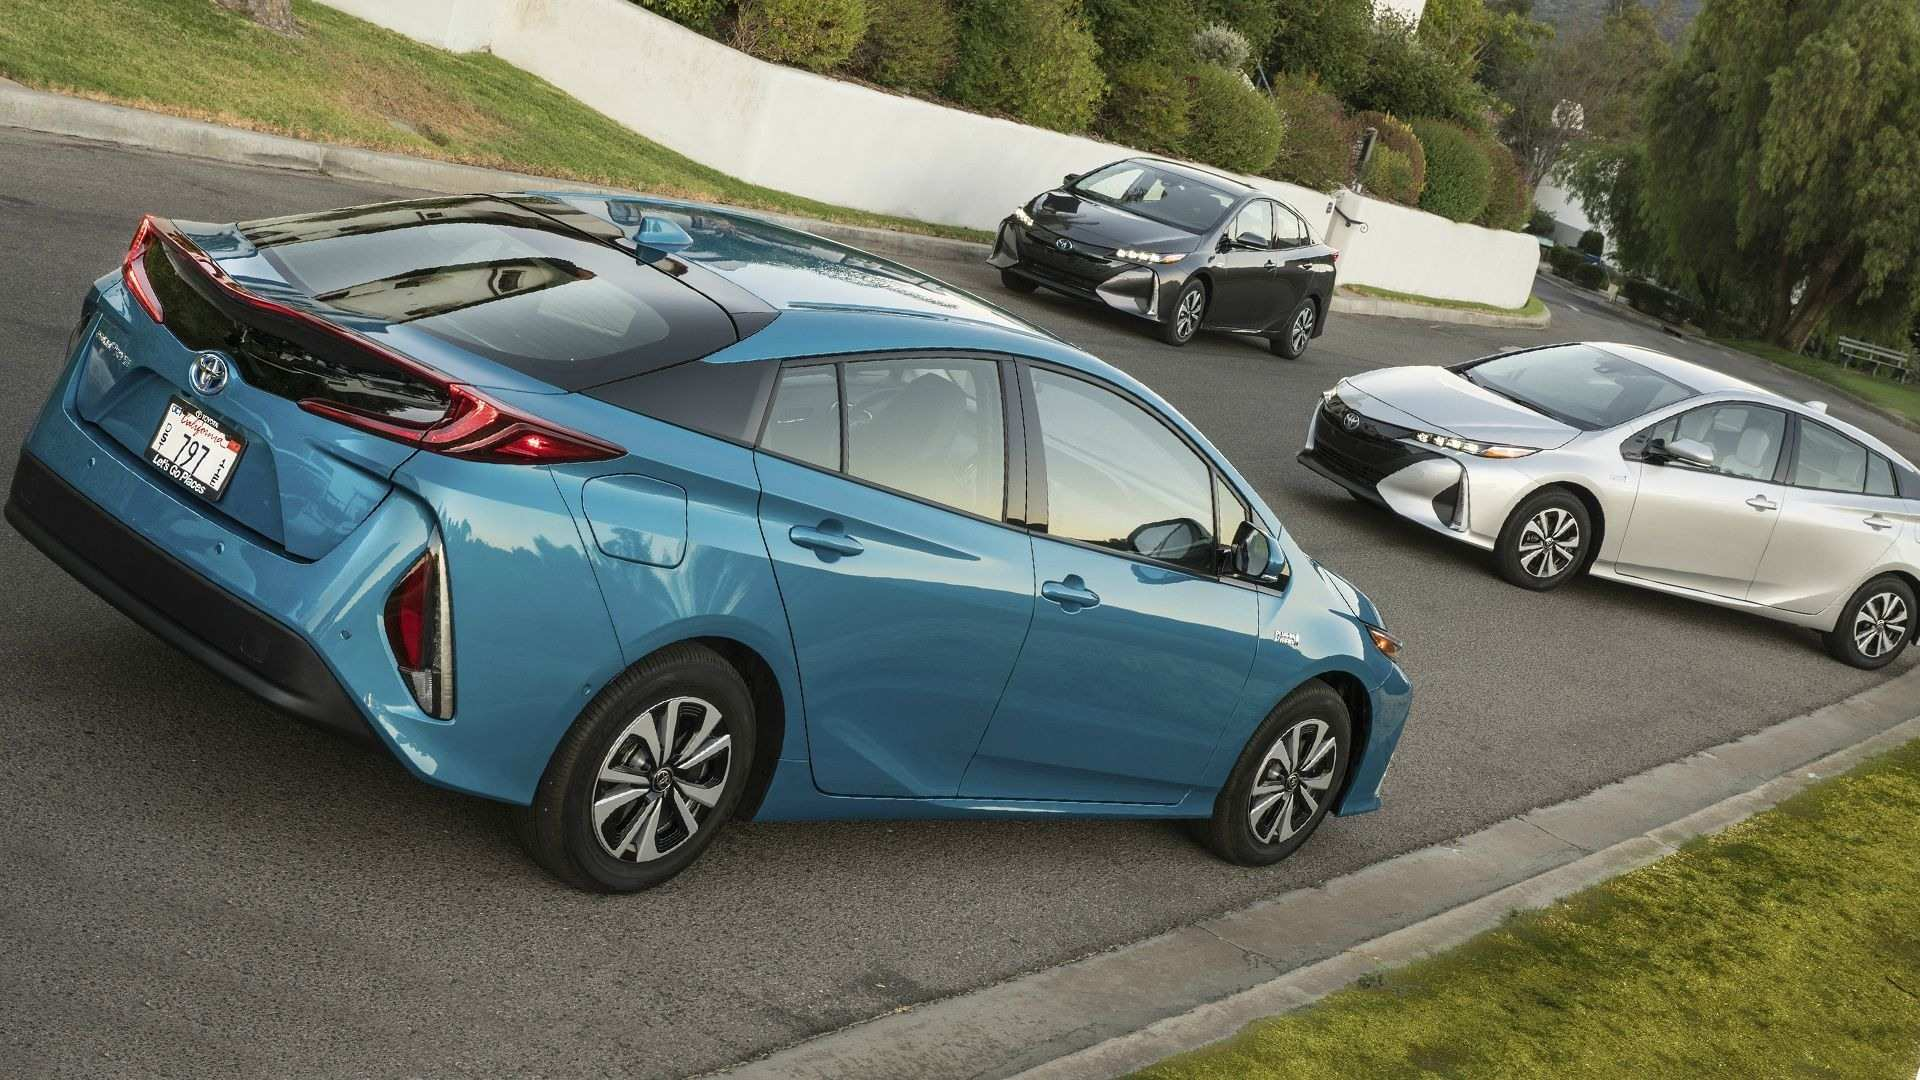 81 Best Review 2019 Toyota Prius Prime Release Date New Review by 2019 Toyota Prius Prime Release Date